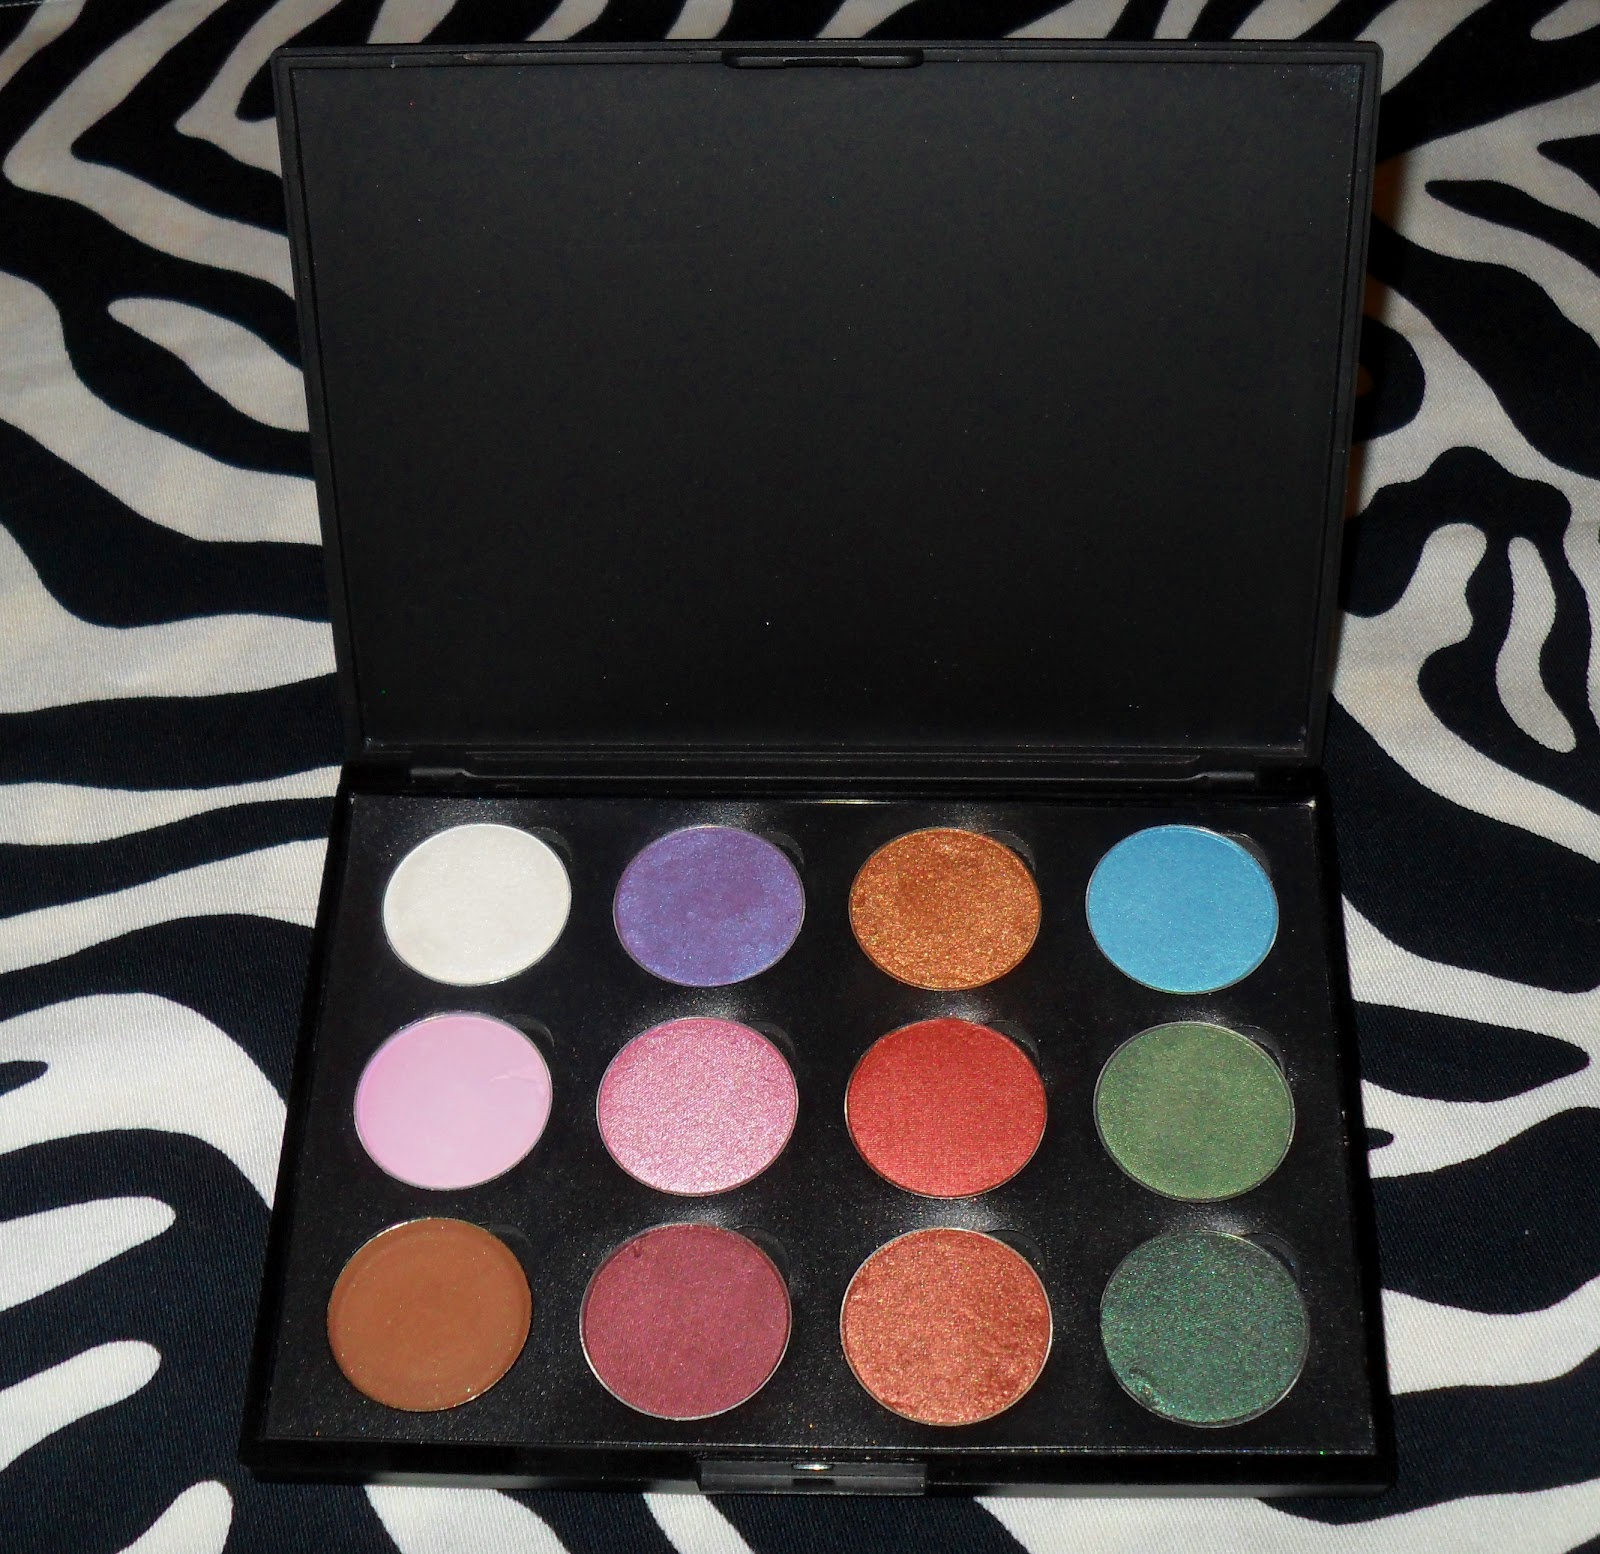 47bef3eba585 HOW TO DEPOT EYESHADOWS - Depotted Lancome Color Design 12 Eyeshadow  Palette +SWATCHES!